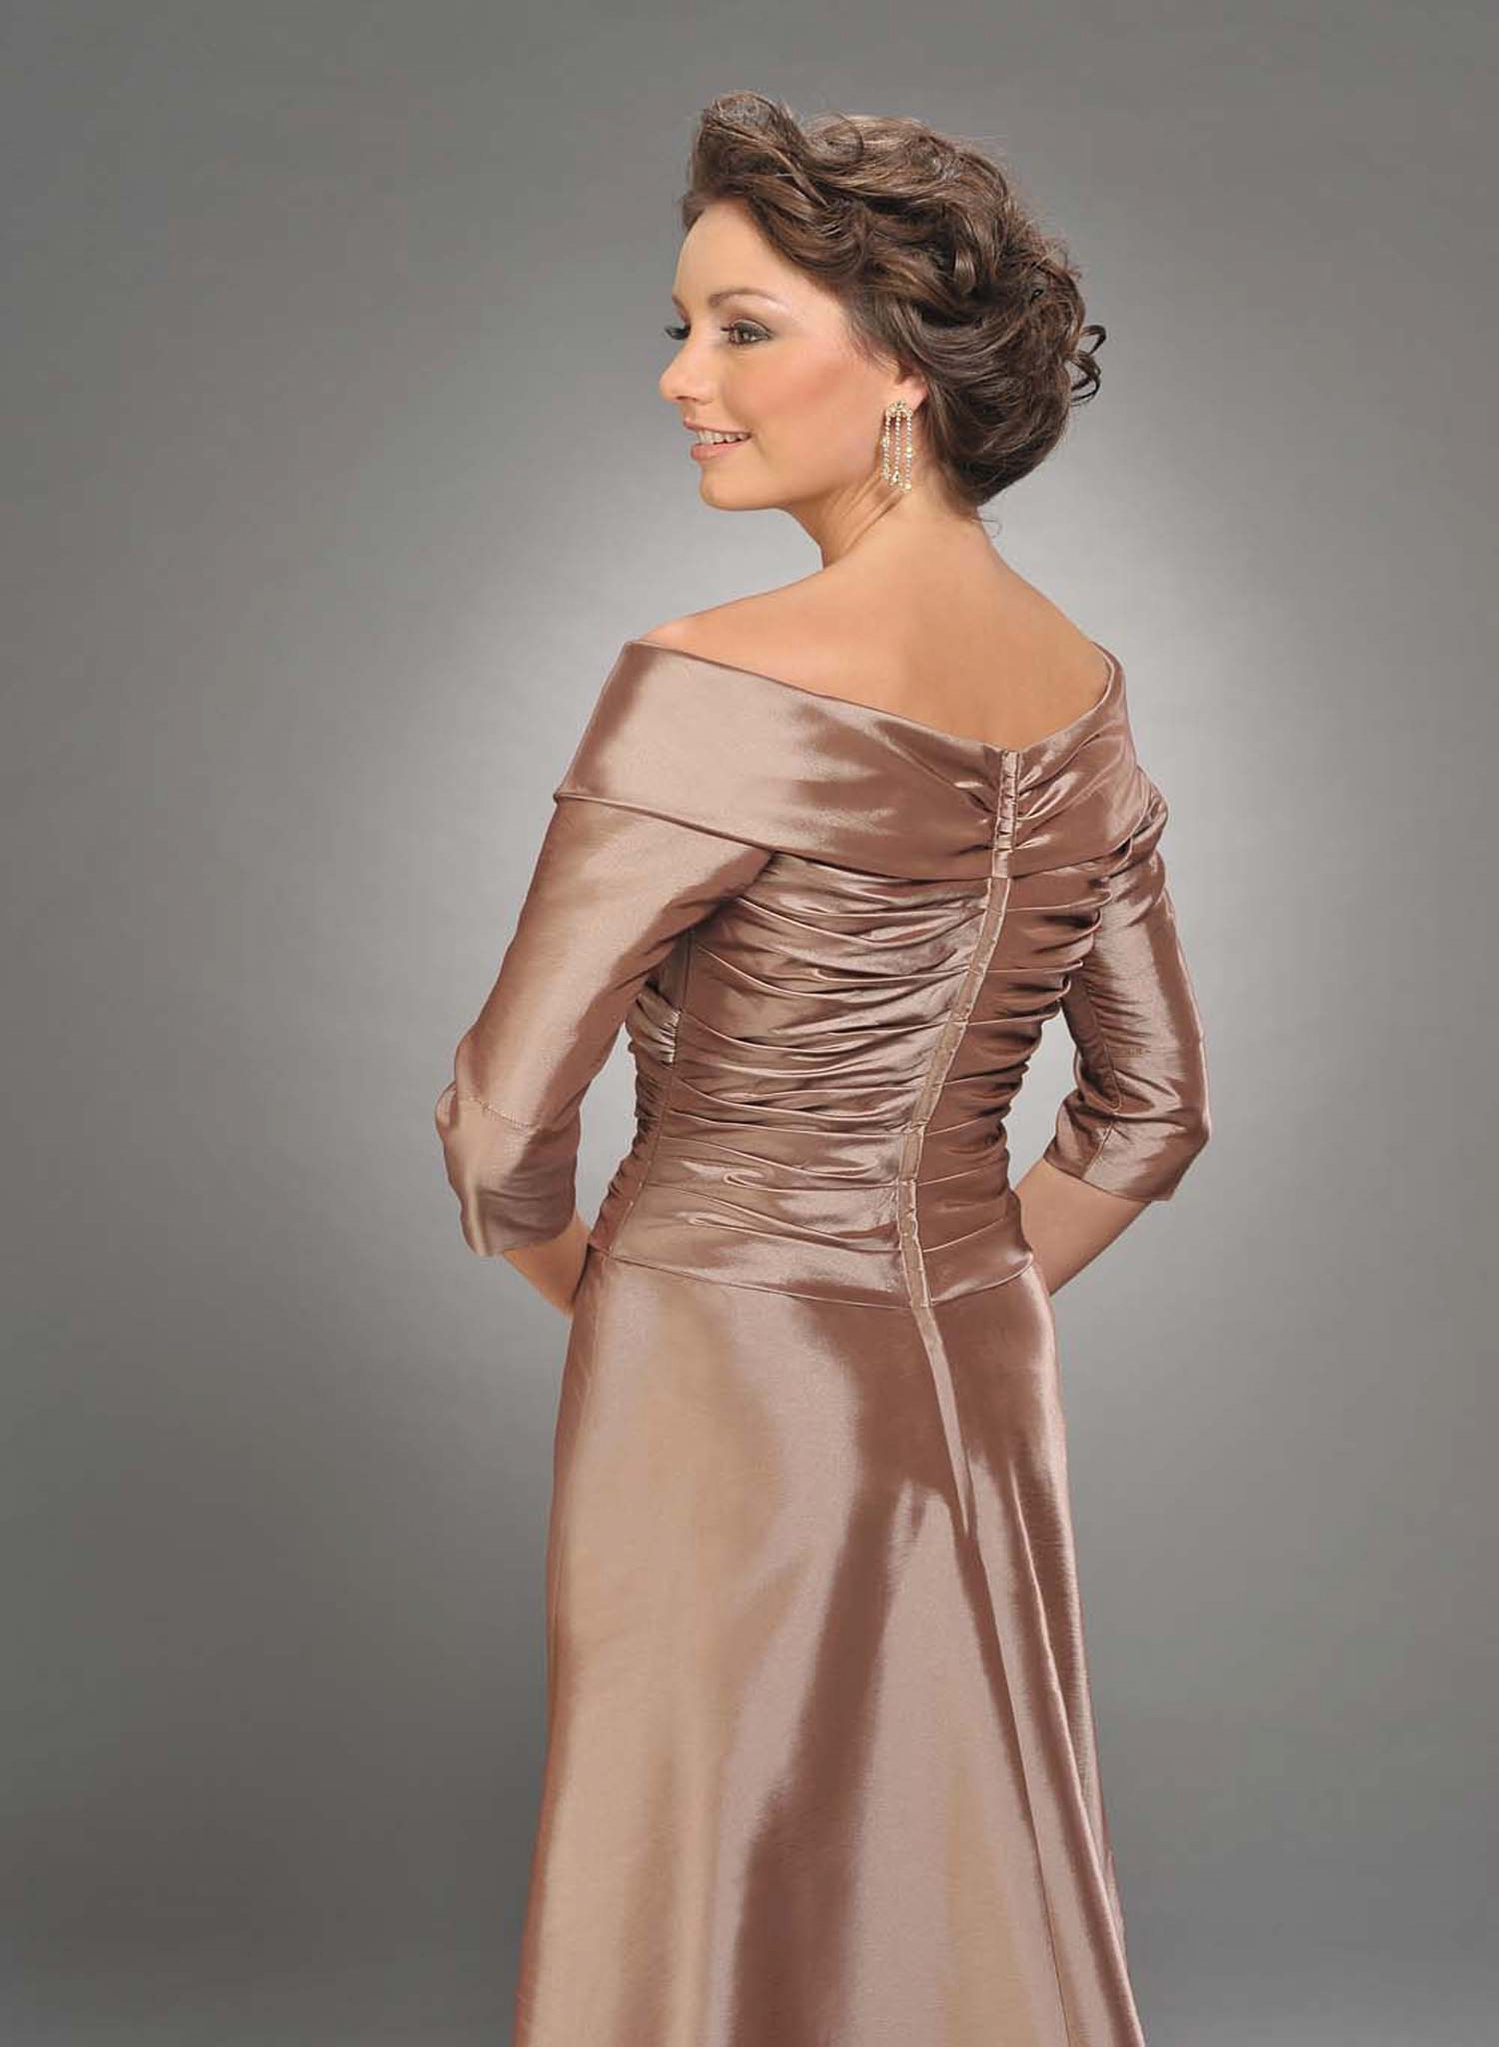 547d1e833 Champagne a Line V Neck Half Sleeves Full Length Mother of Bride Dresses  With Drapes